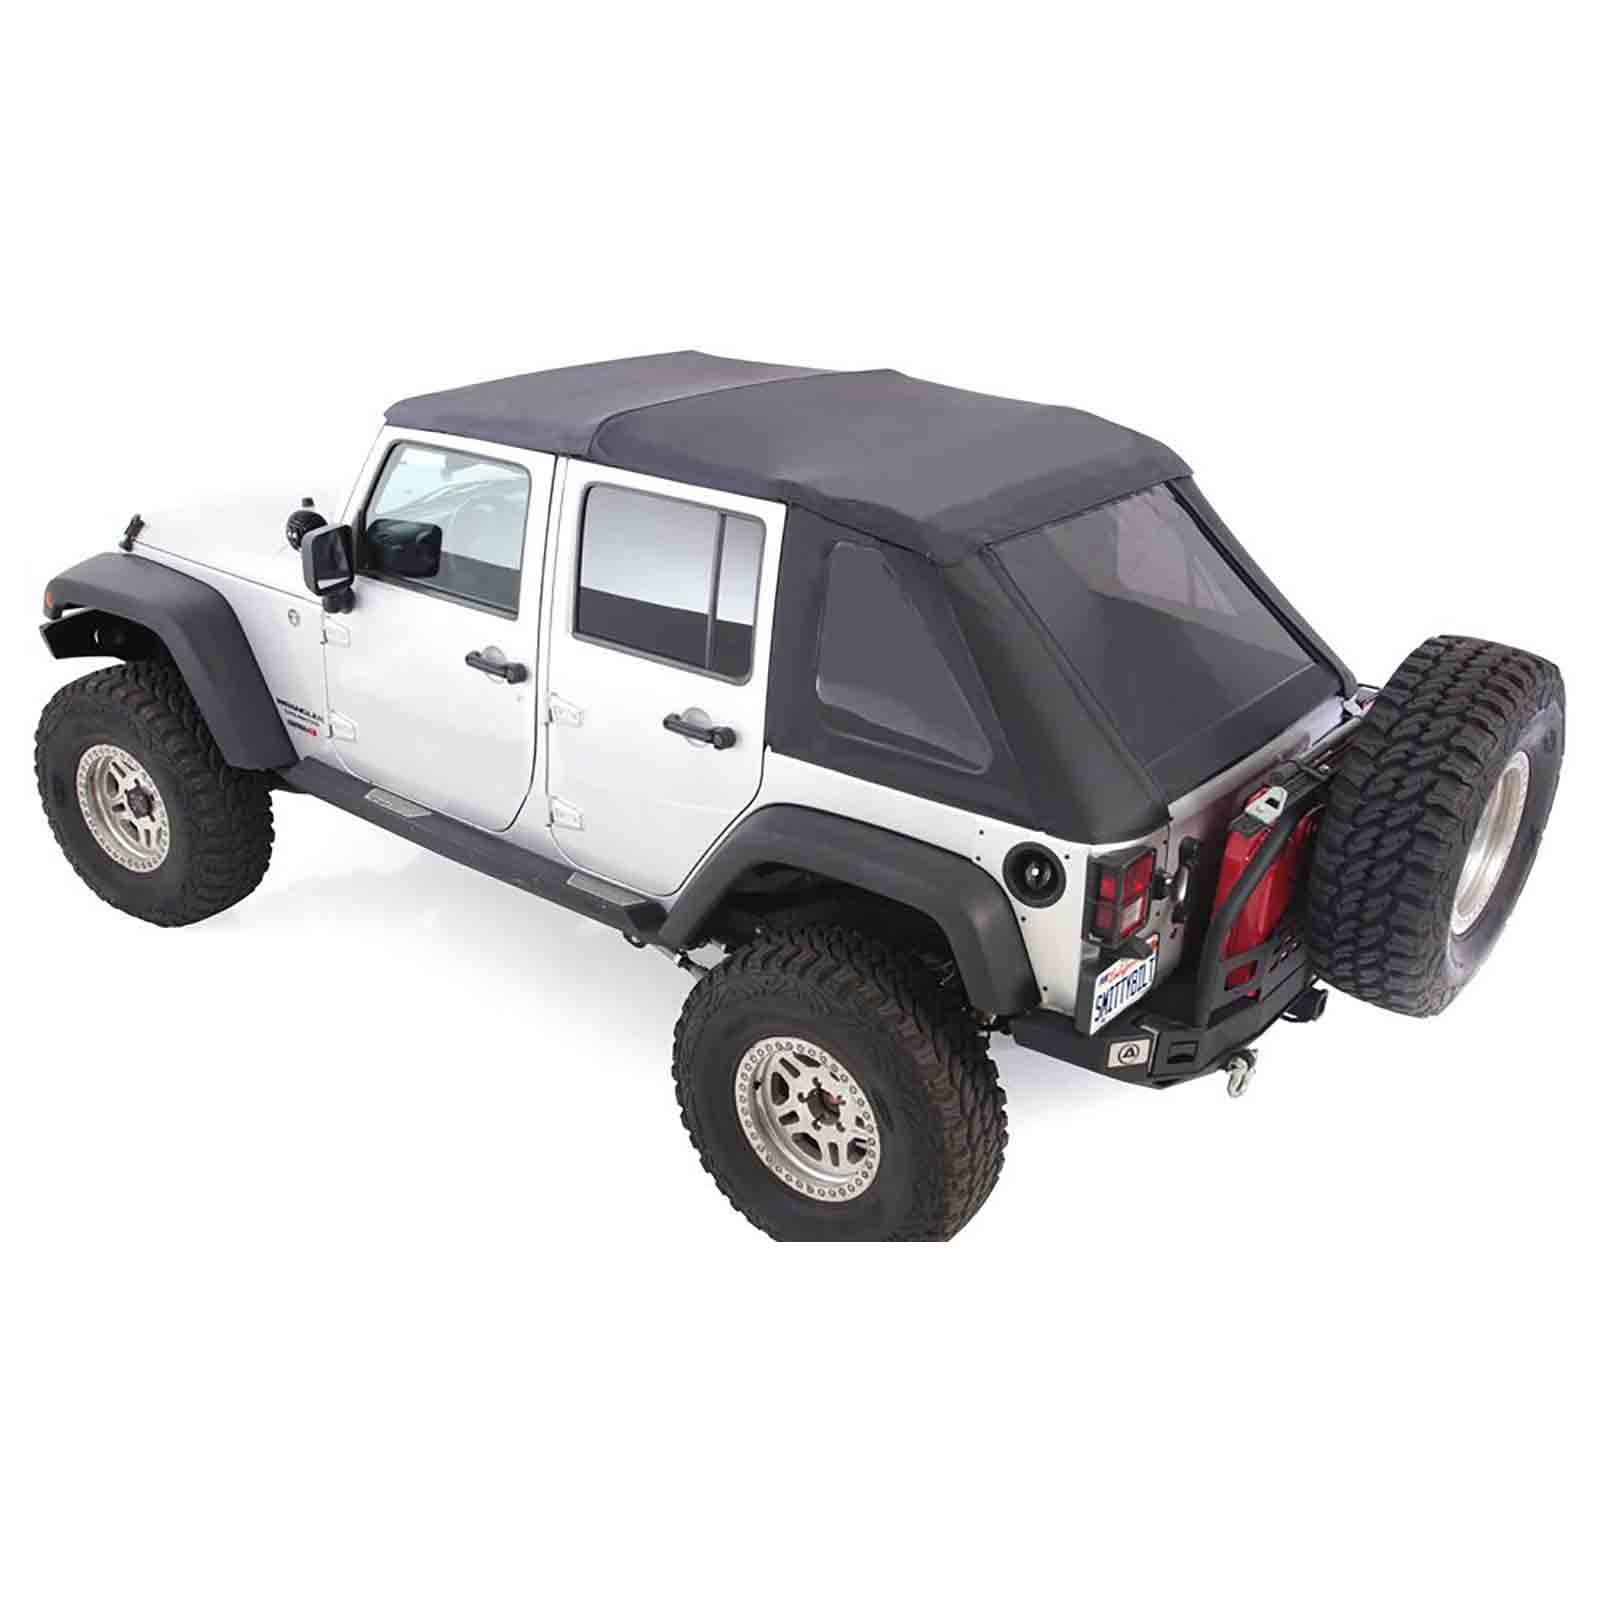 Bowless softtop soft top capottina wrangler jk unlimited 07 17 con vetri scuri ricambi jeep